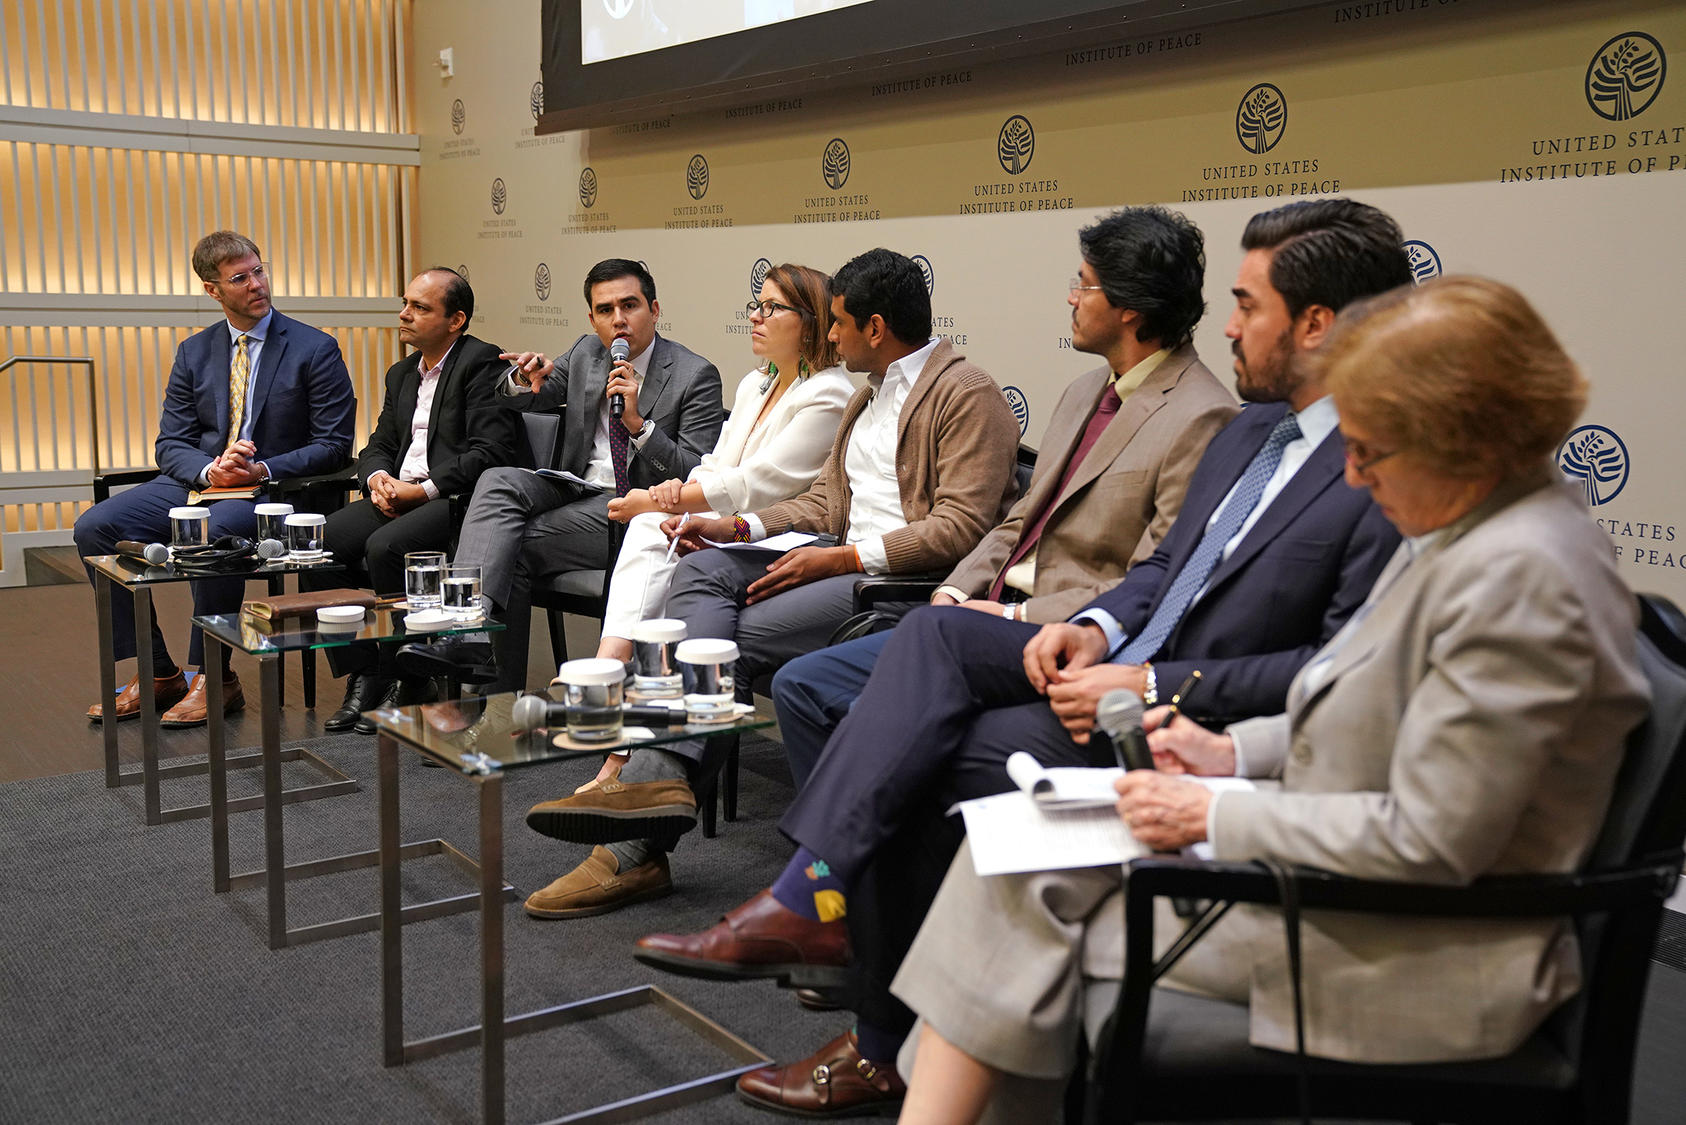 Left to right: USIP's Steve Hege; Colombian lawmakers John Jairo Hoyos, Carlos Ardila, Juanita Goebertus, David Racero, David Pulido, and Gabriel Santos; Woodrow Wilson Center's Cynthia Arnson.